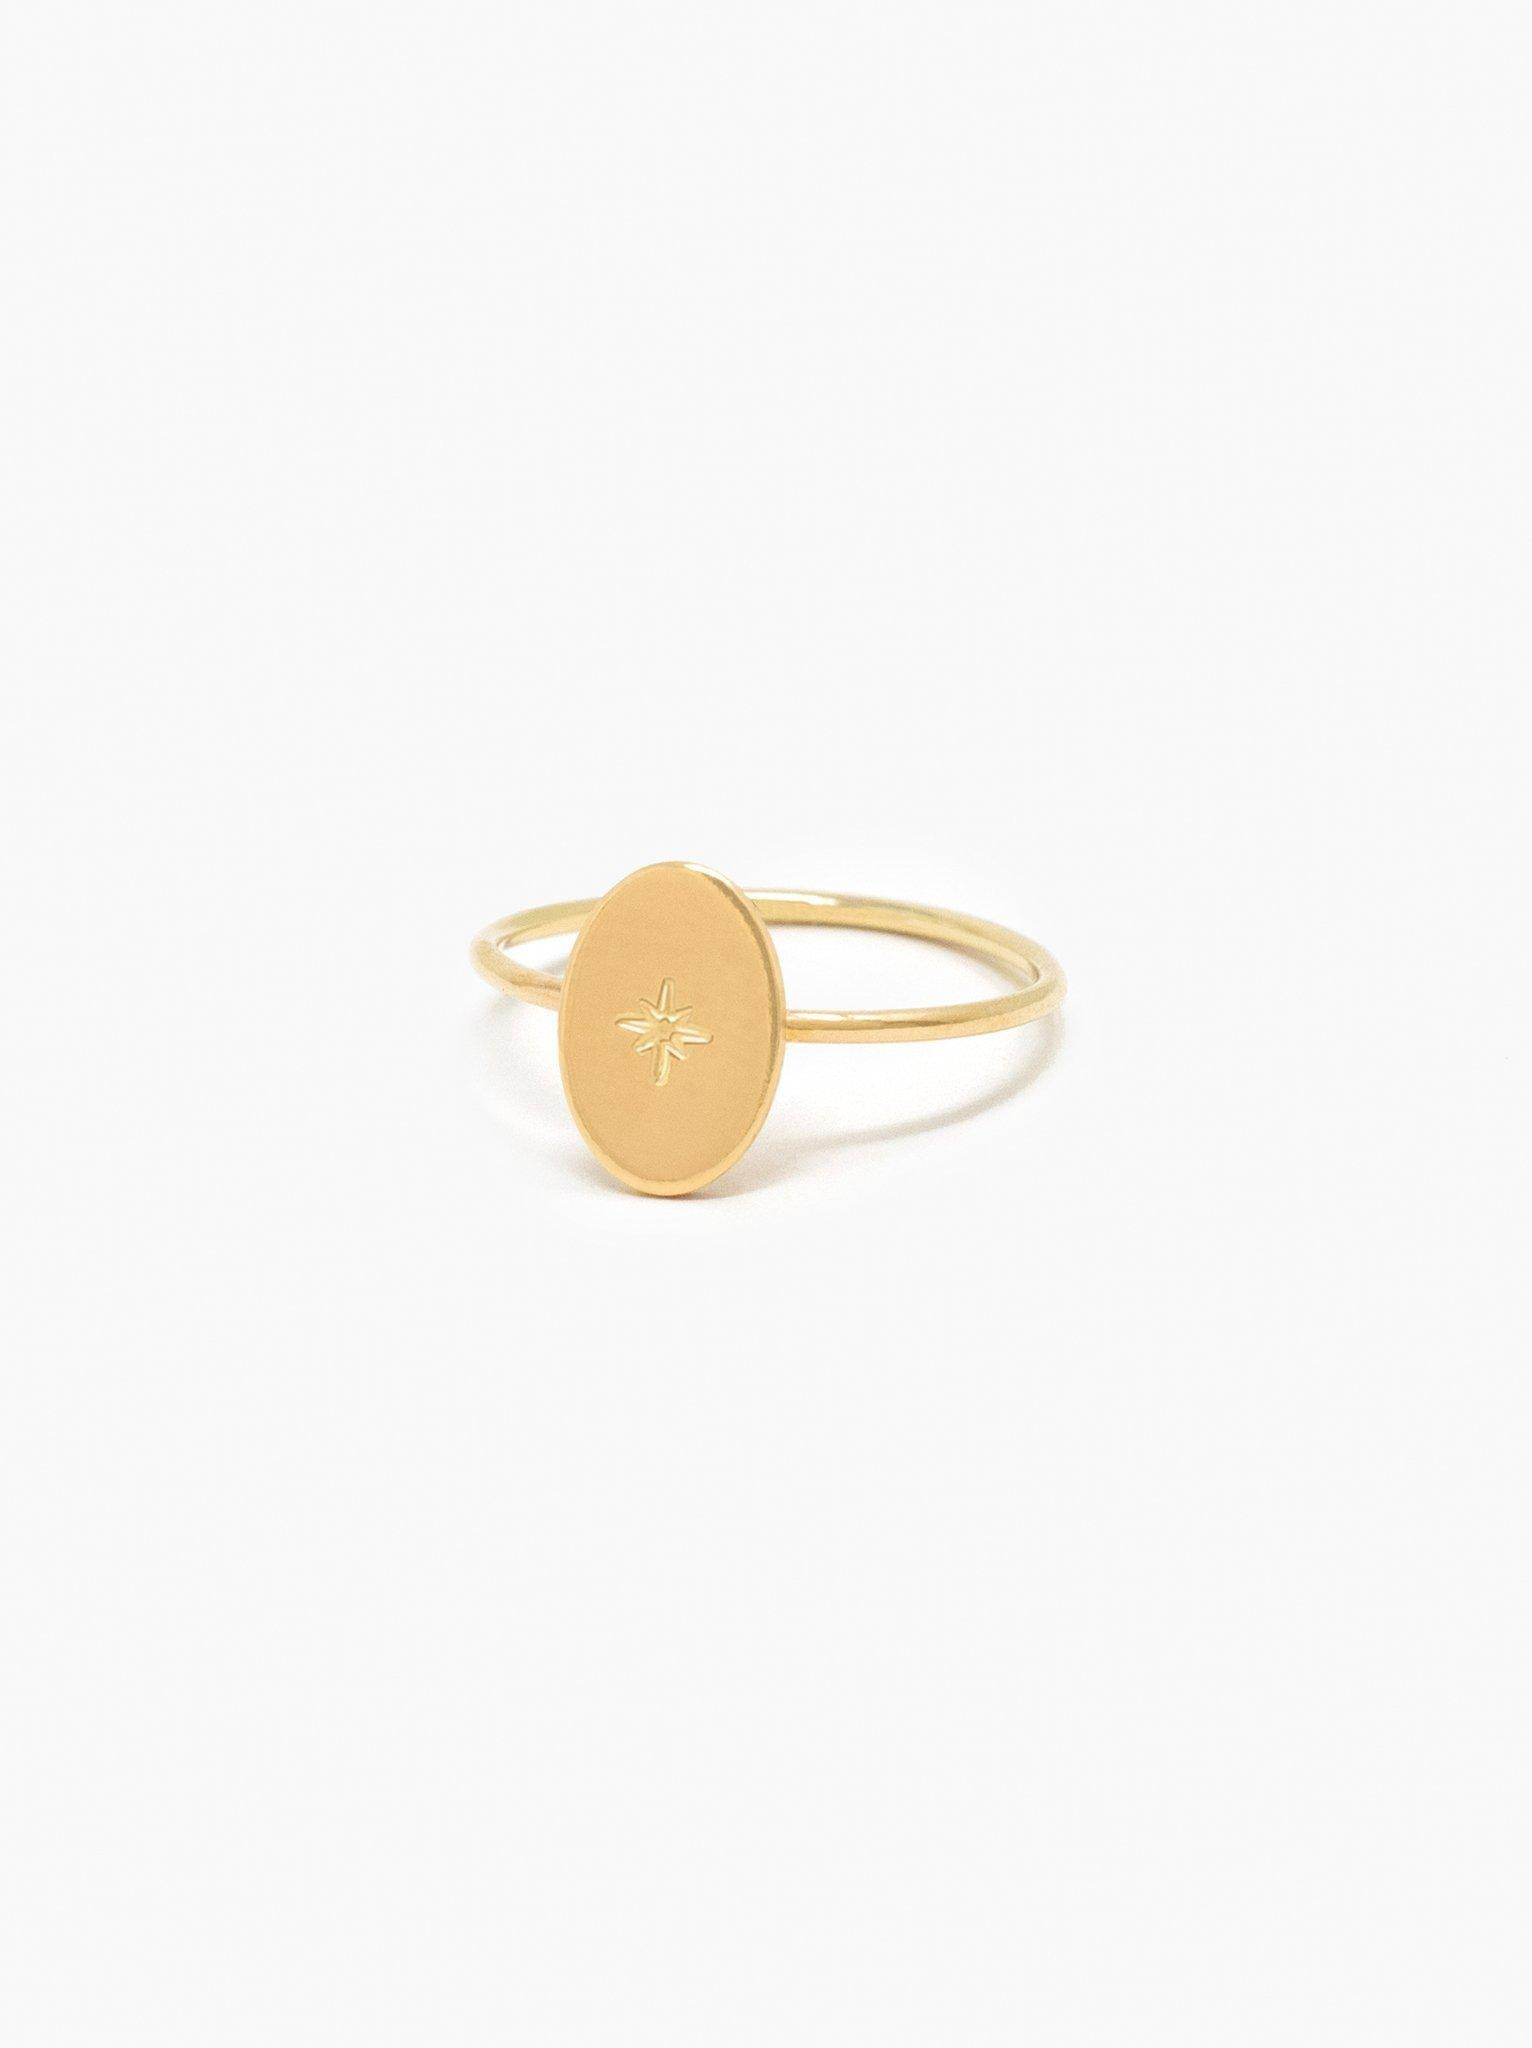 Able Dainty Oval Ring - Gold